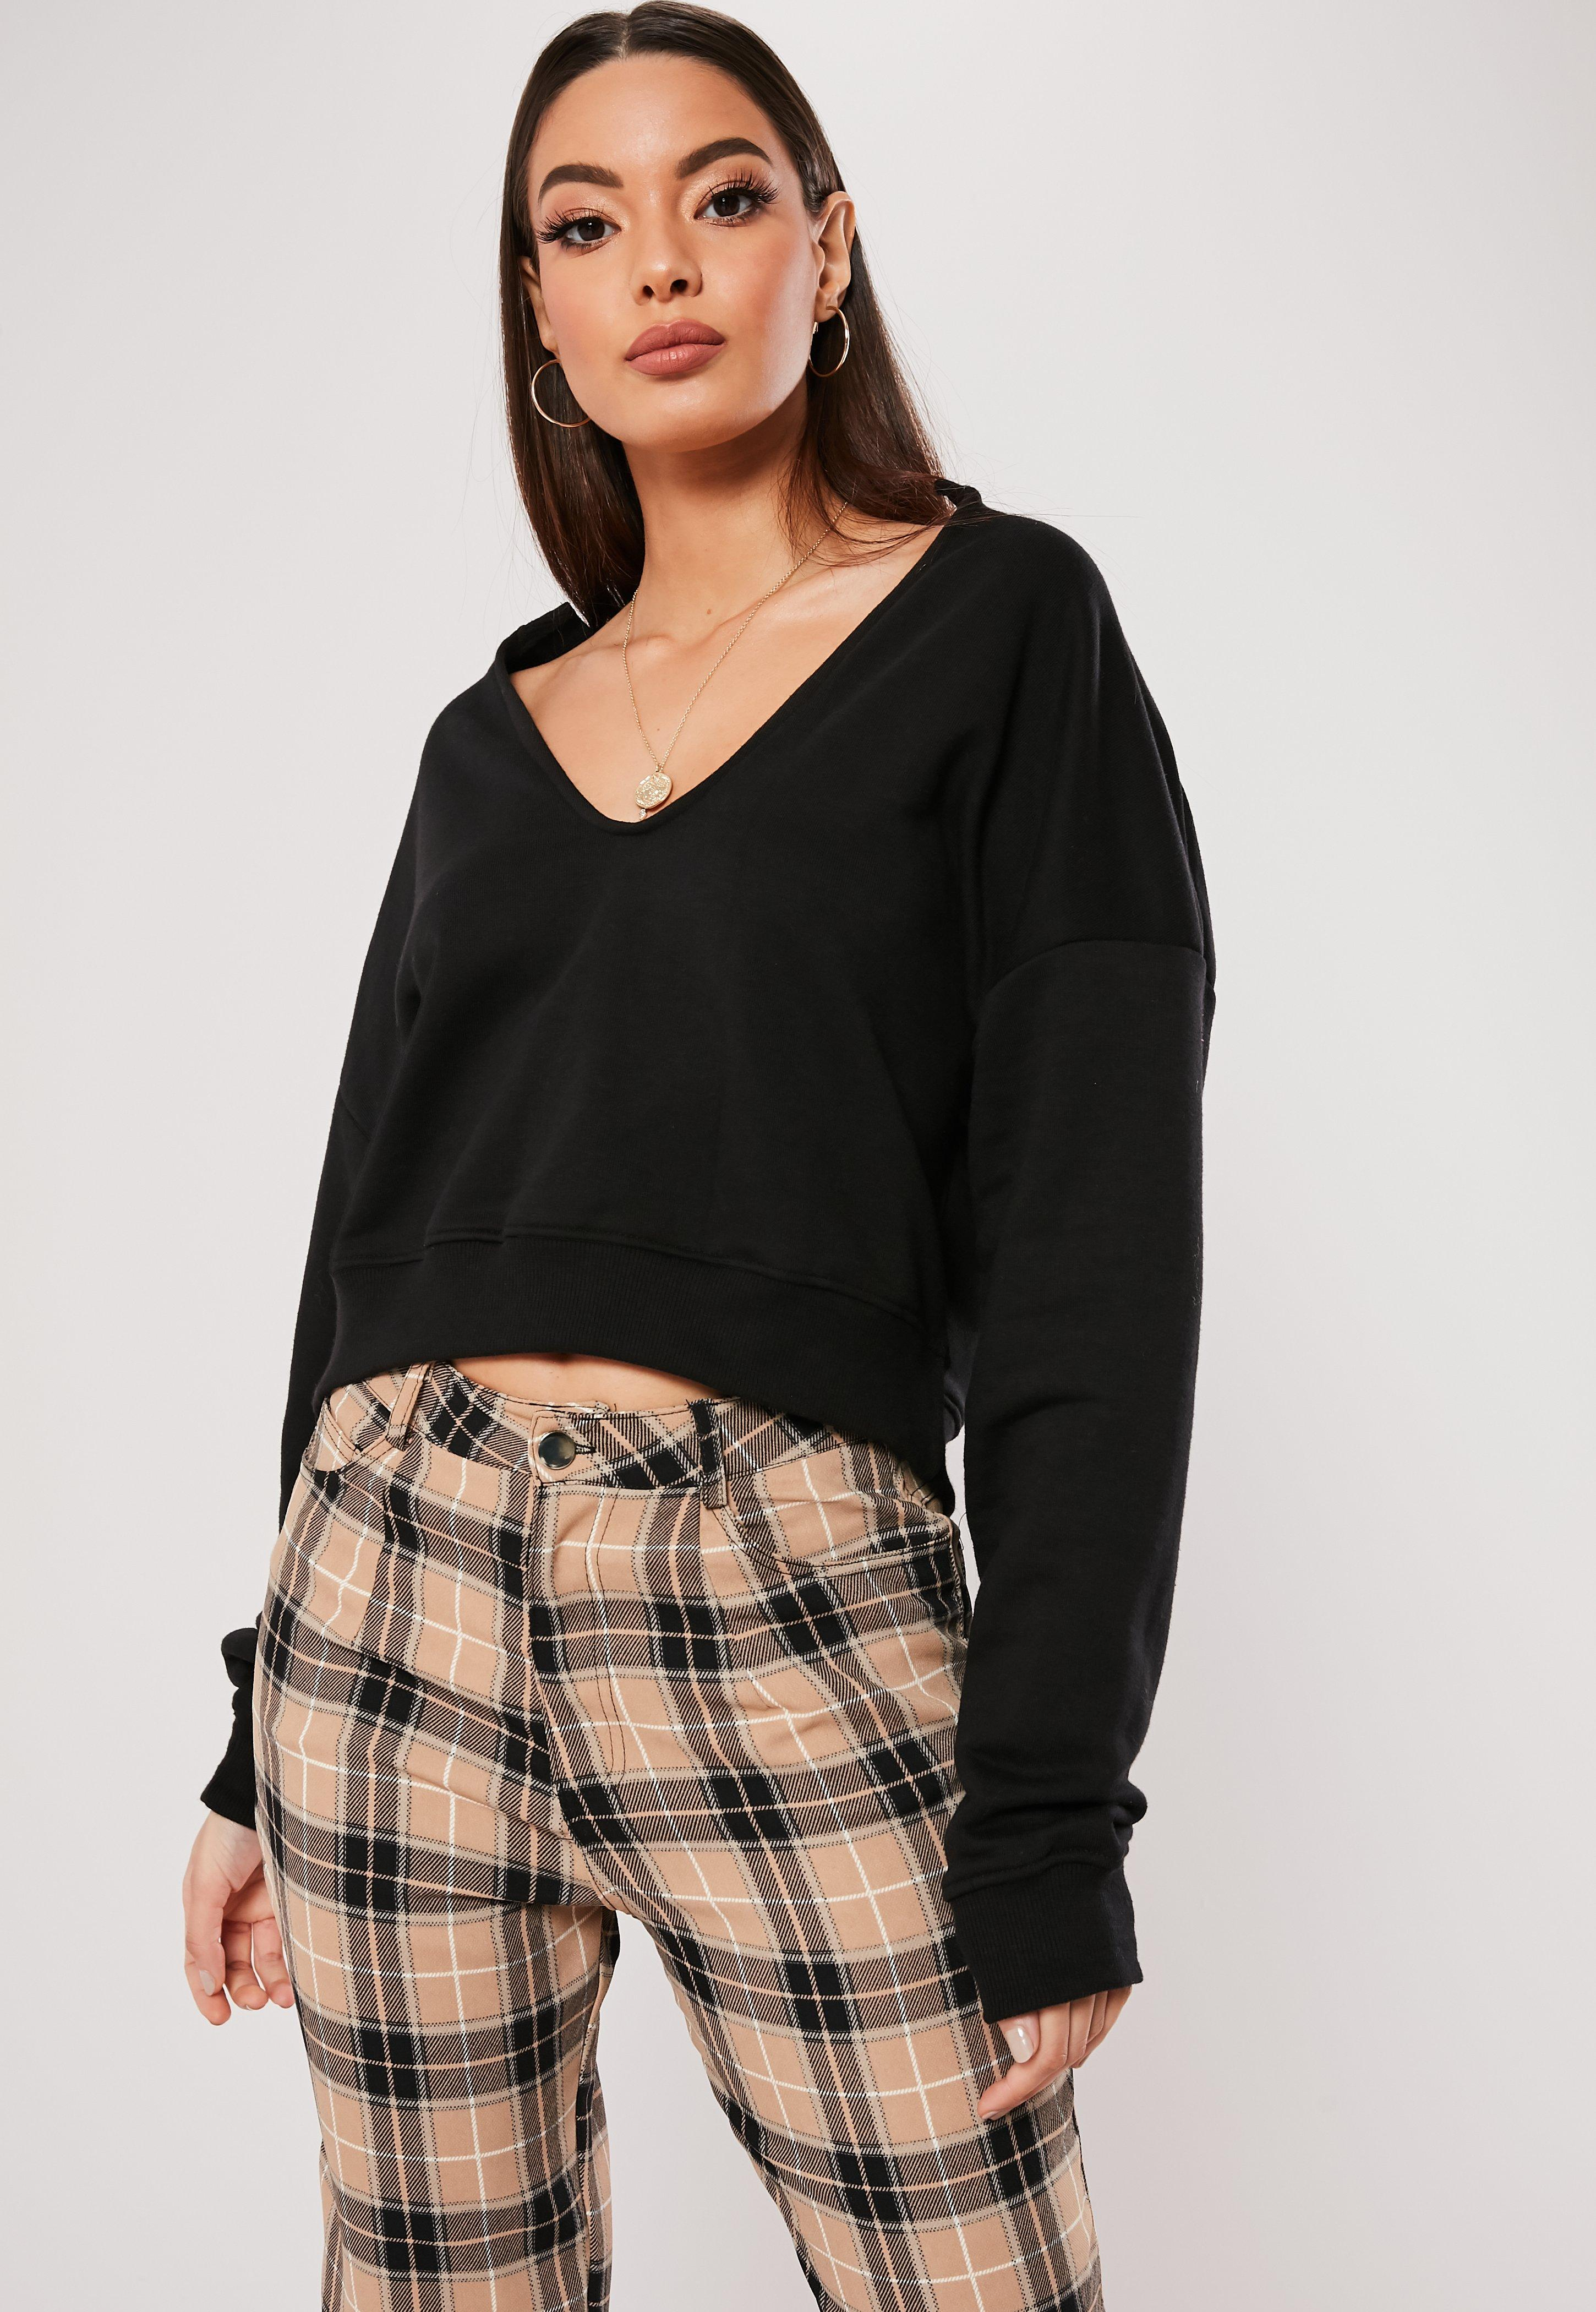 7eab1b8e4fe1 Cheap Clothes Online - Women's Sale Clothing | Missguided